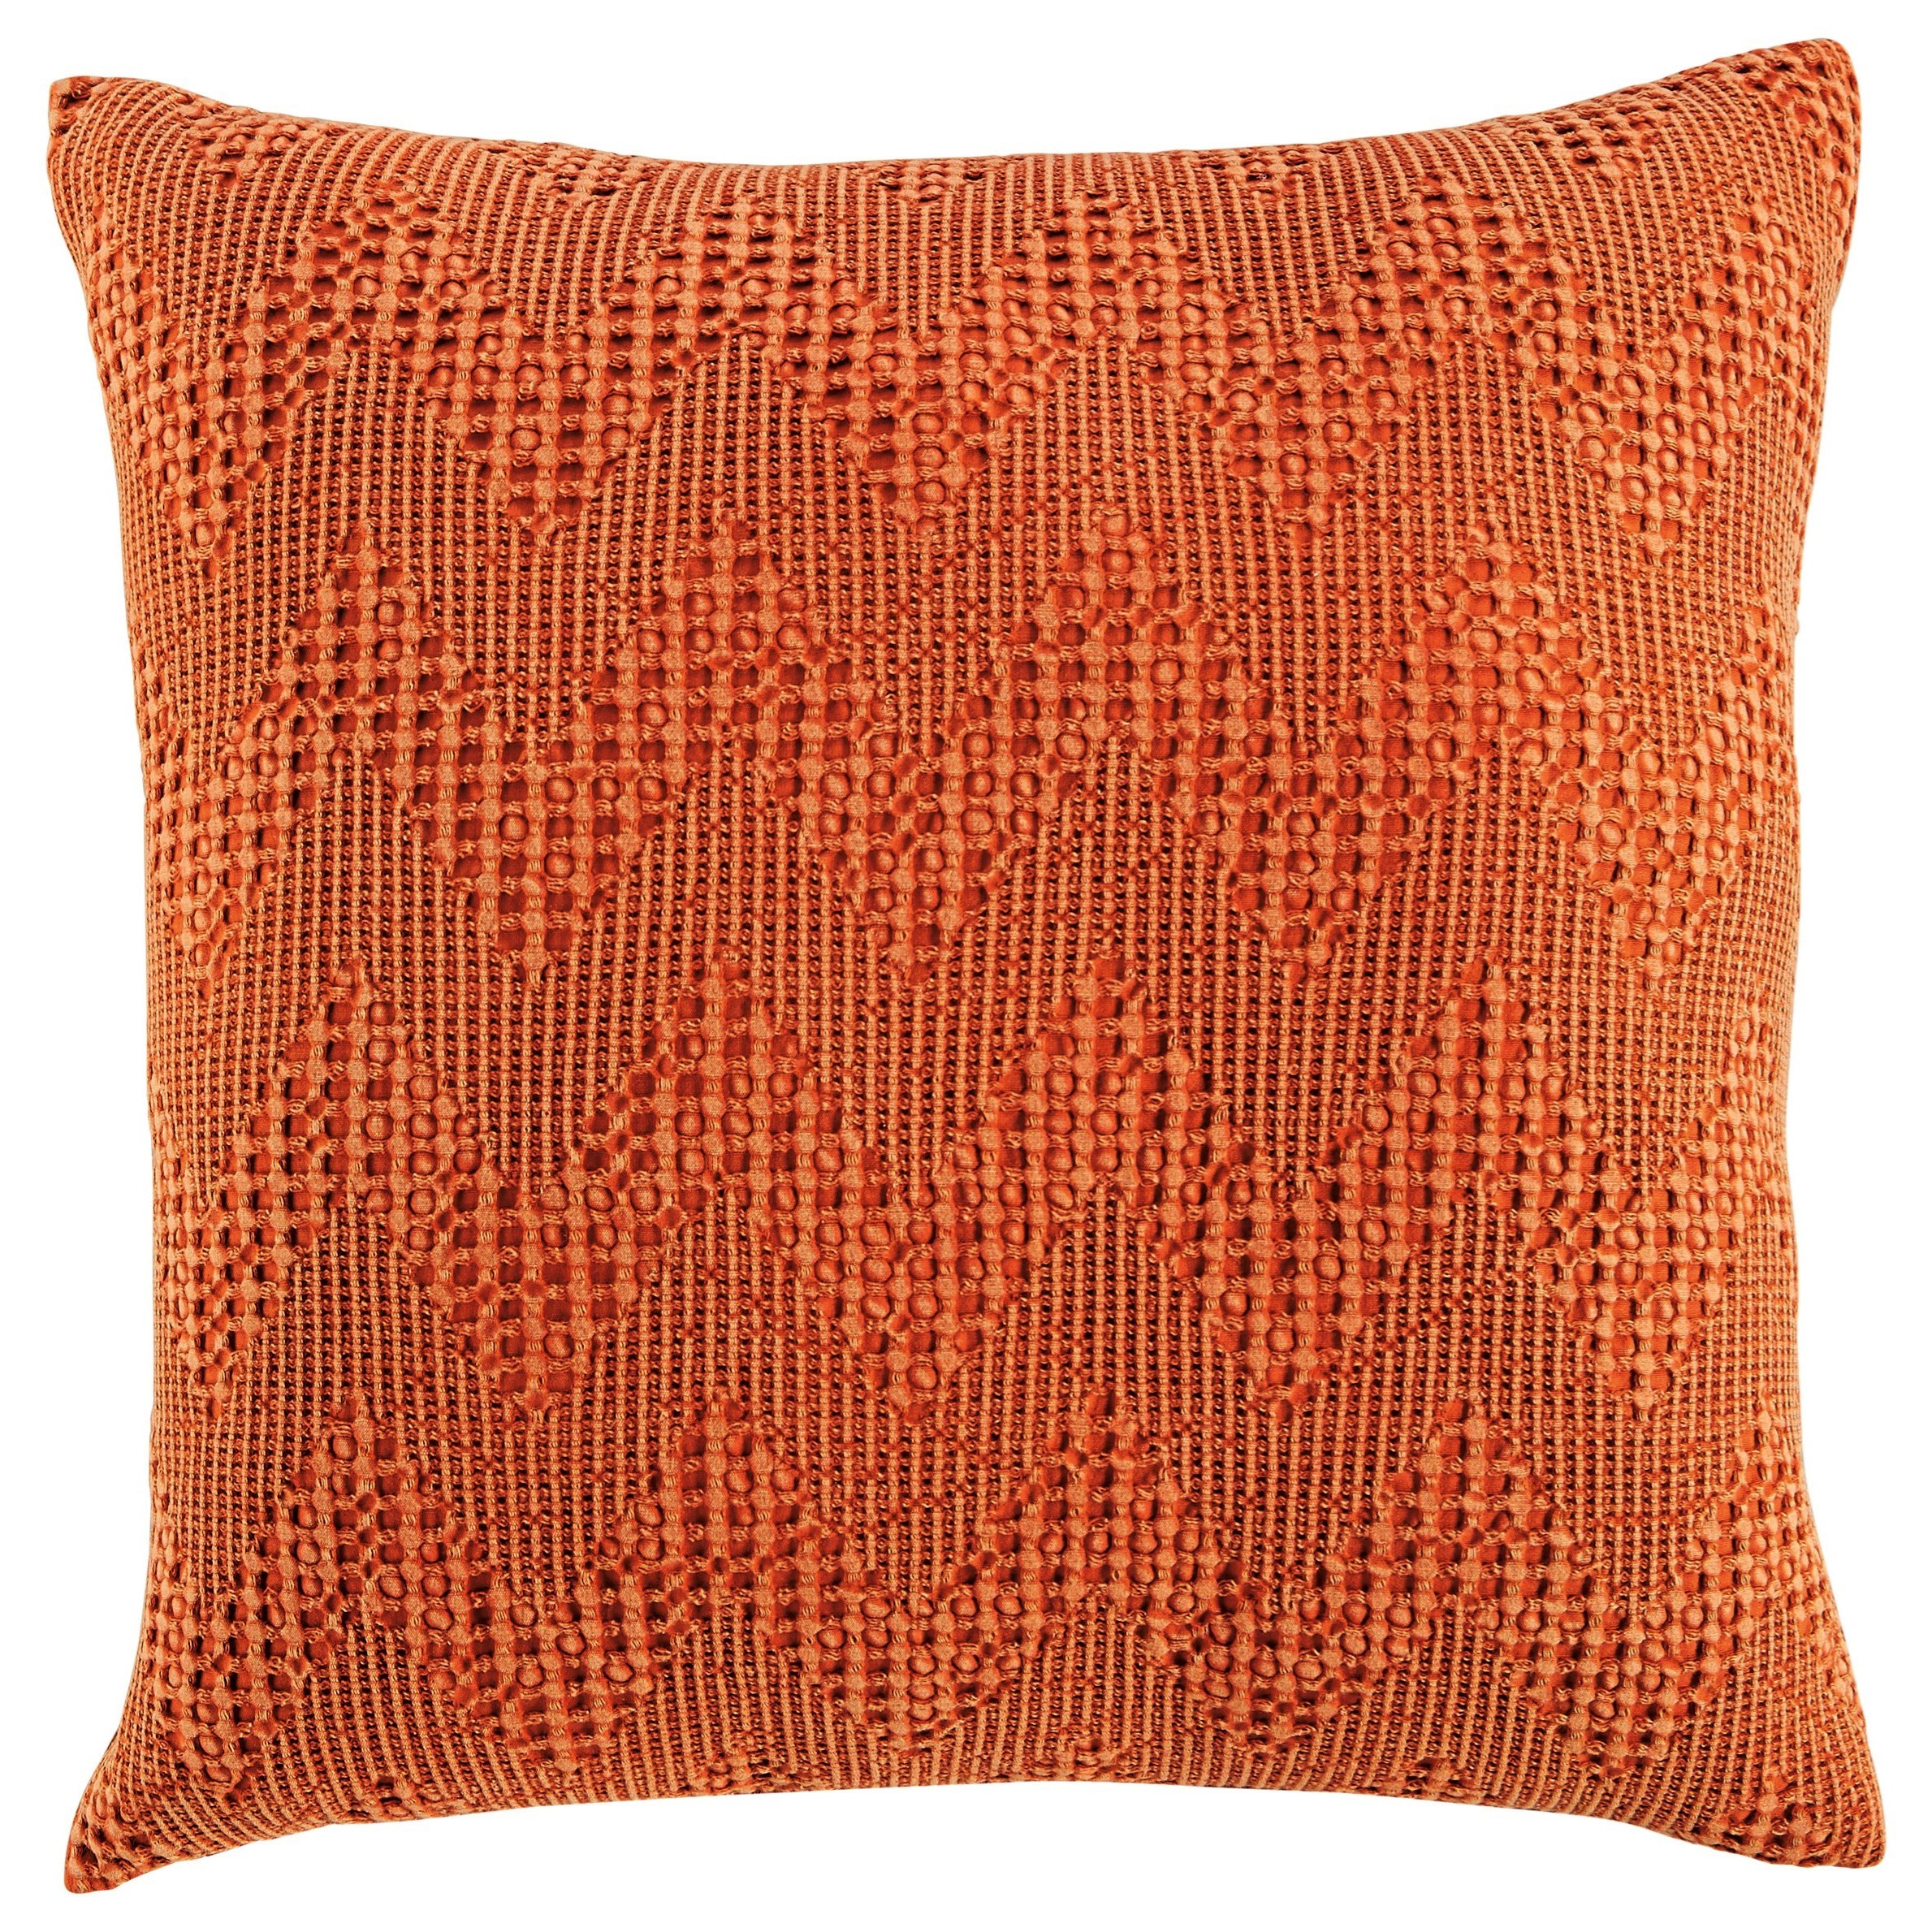 Pillows Dunford Rust Pillow by Signature Design by Ashley at Northeast Factory Direct